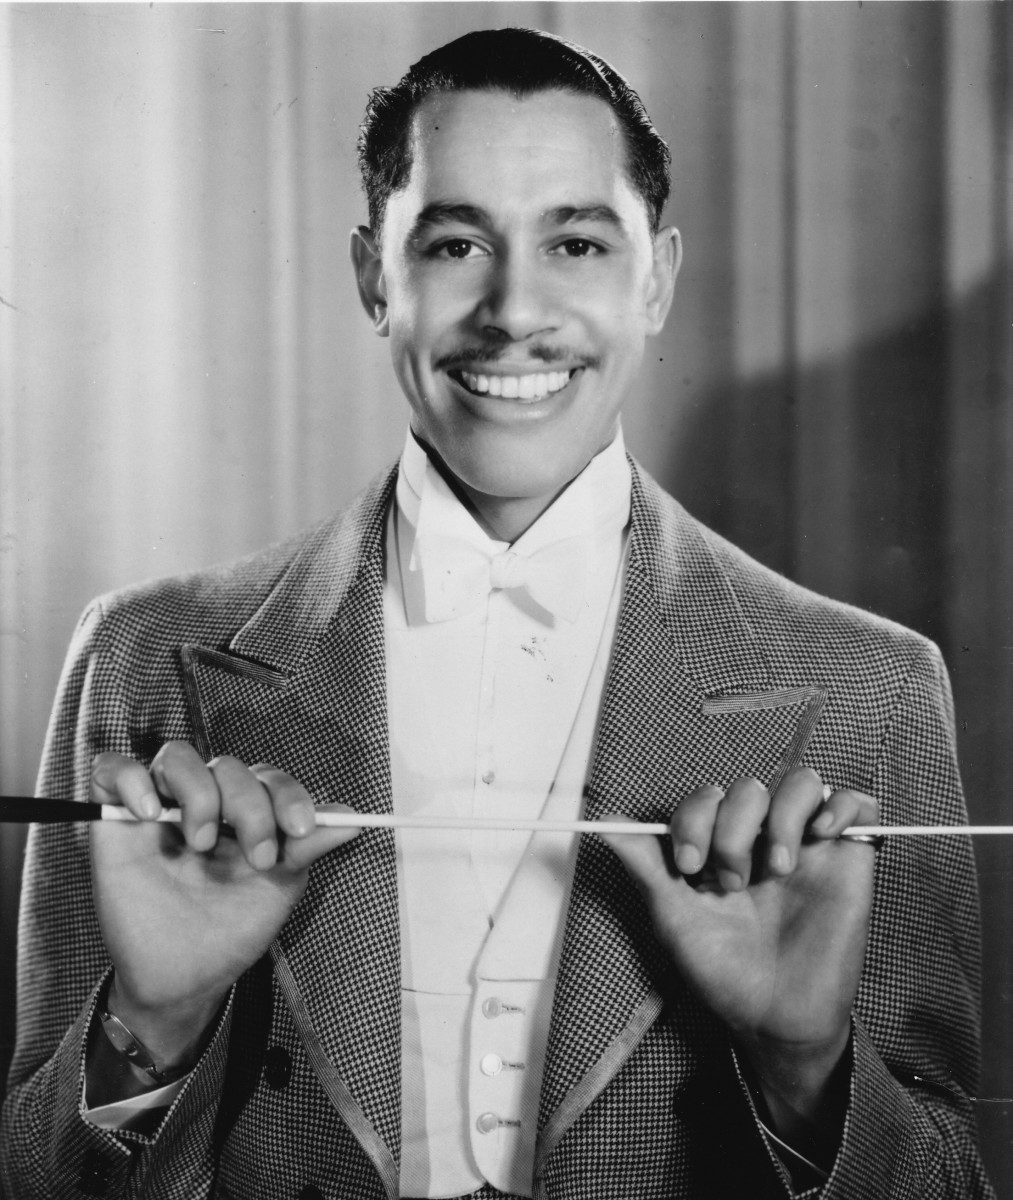 Harlem Renaissance Figures: Cab Calloway regularly performed at Harlem's segregated Cotton Club during the 1930s, slowly changing the way that African-Americans were seen by the public. (Photo by Gilles Petard/Redferns)